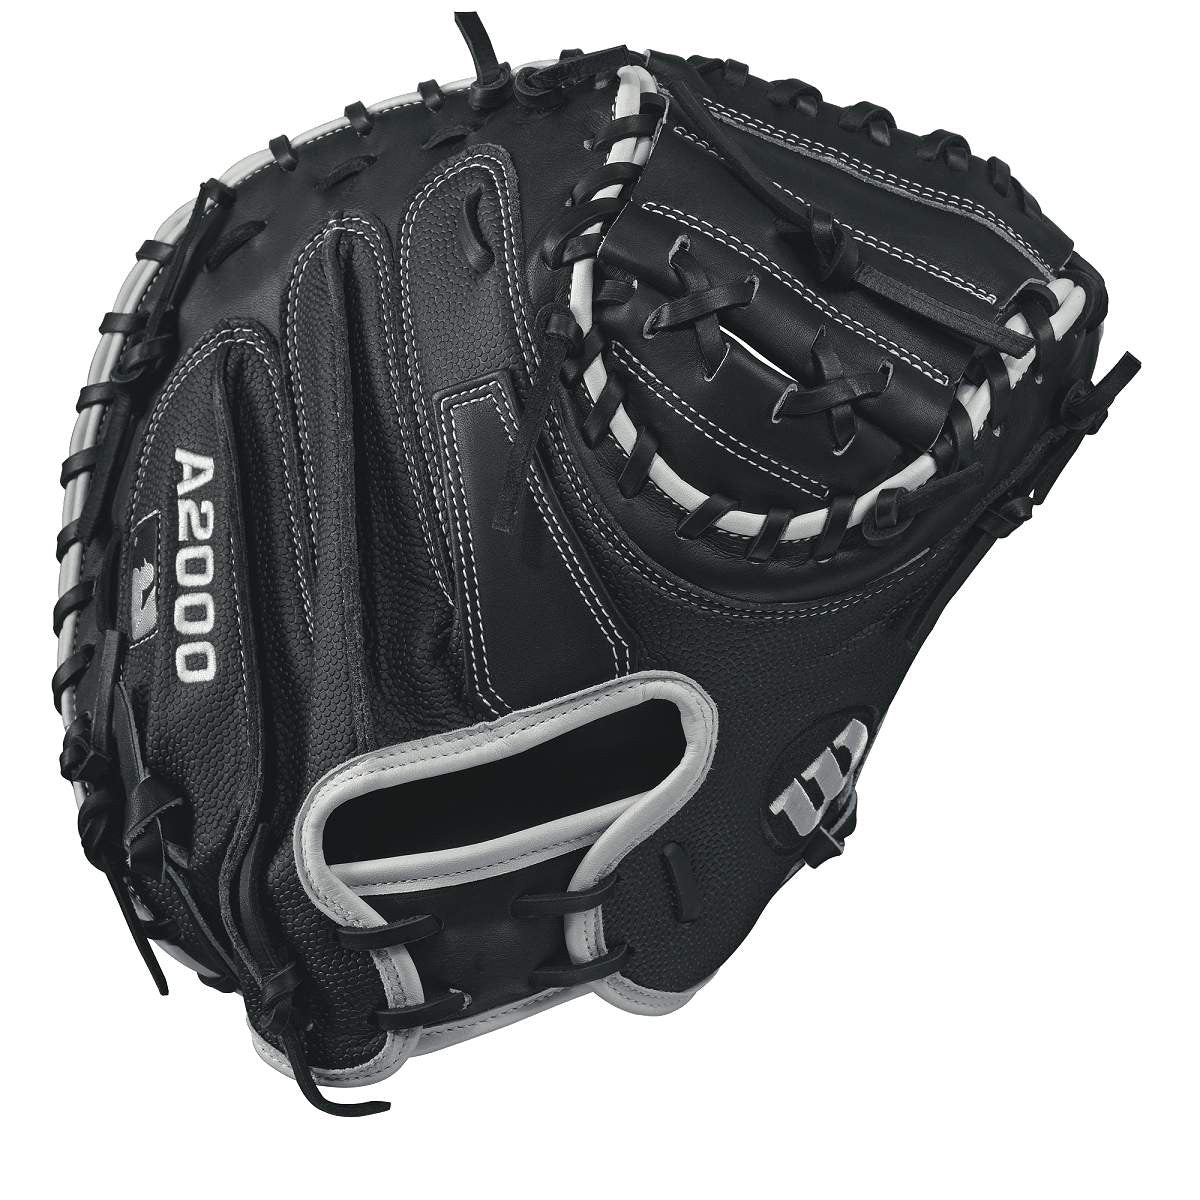 "A2000 M1 SUPER SKIN 33.5"" CATCHER'S MITT"